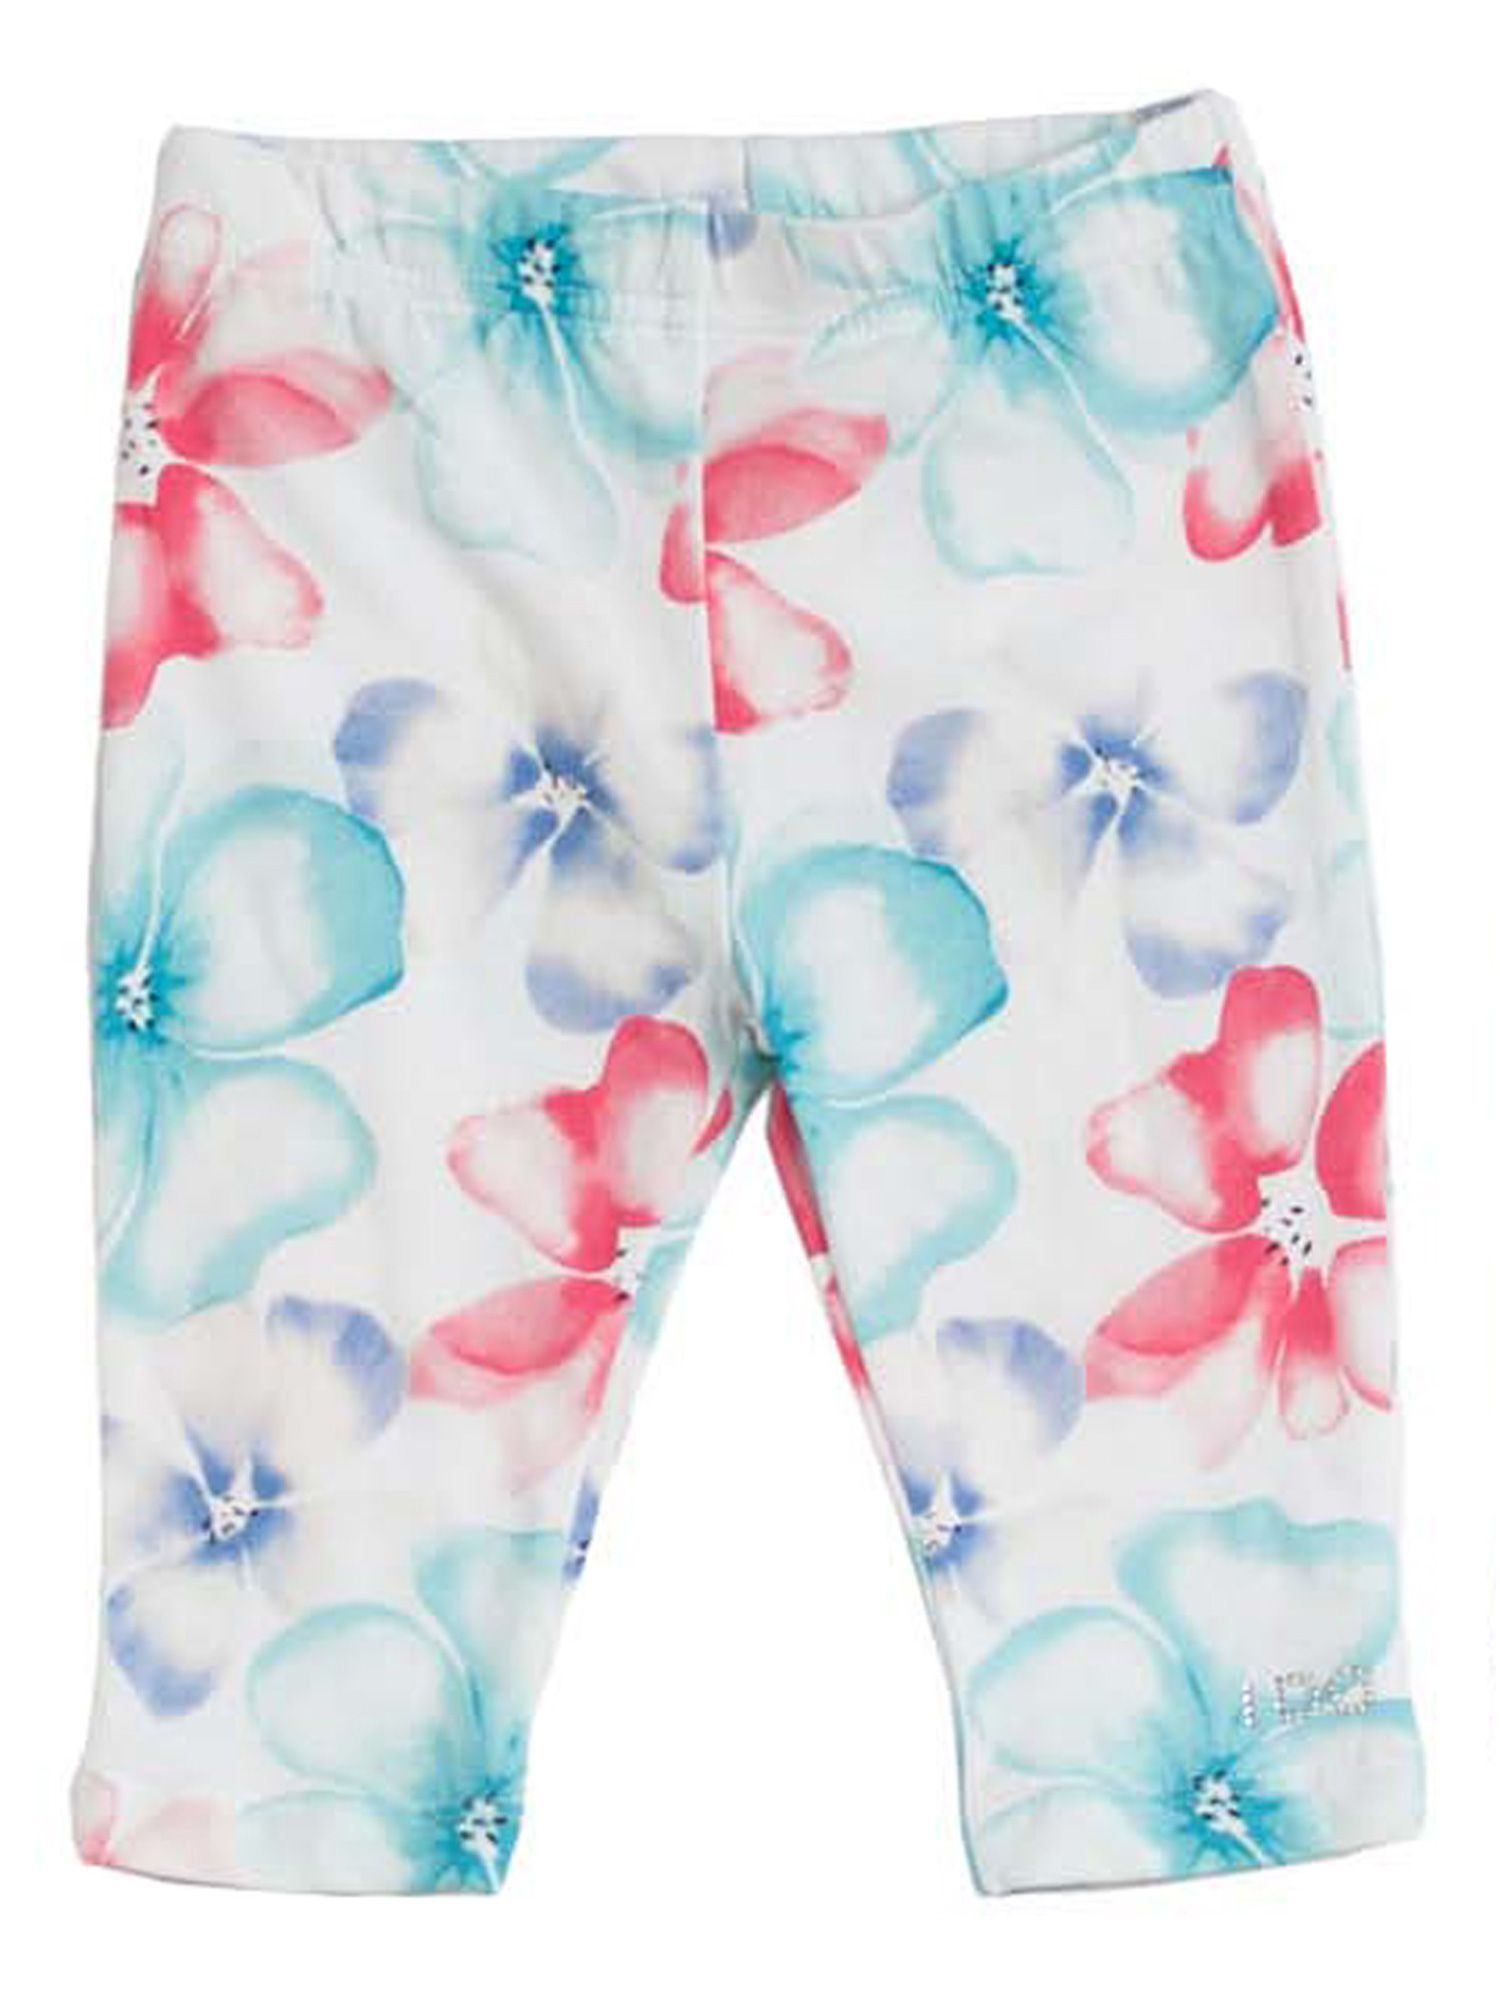 Girls flowery printed stretchy leggings